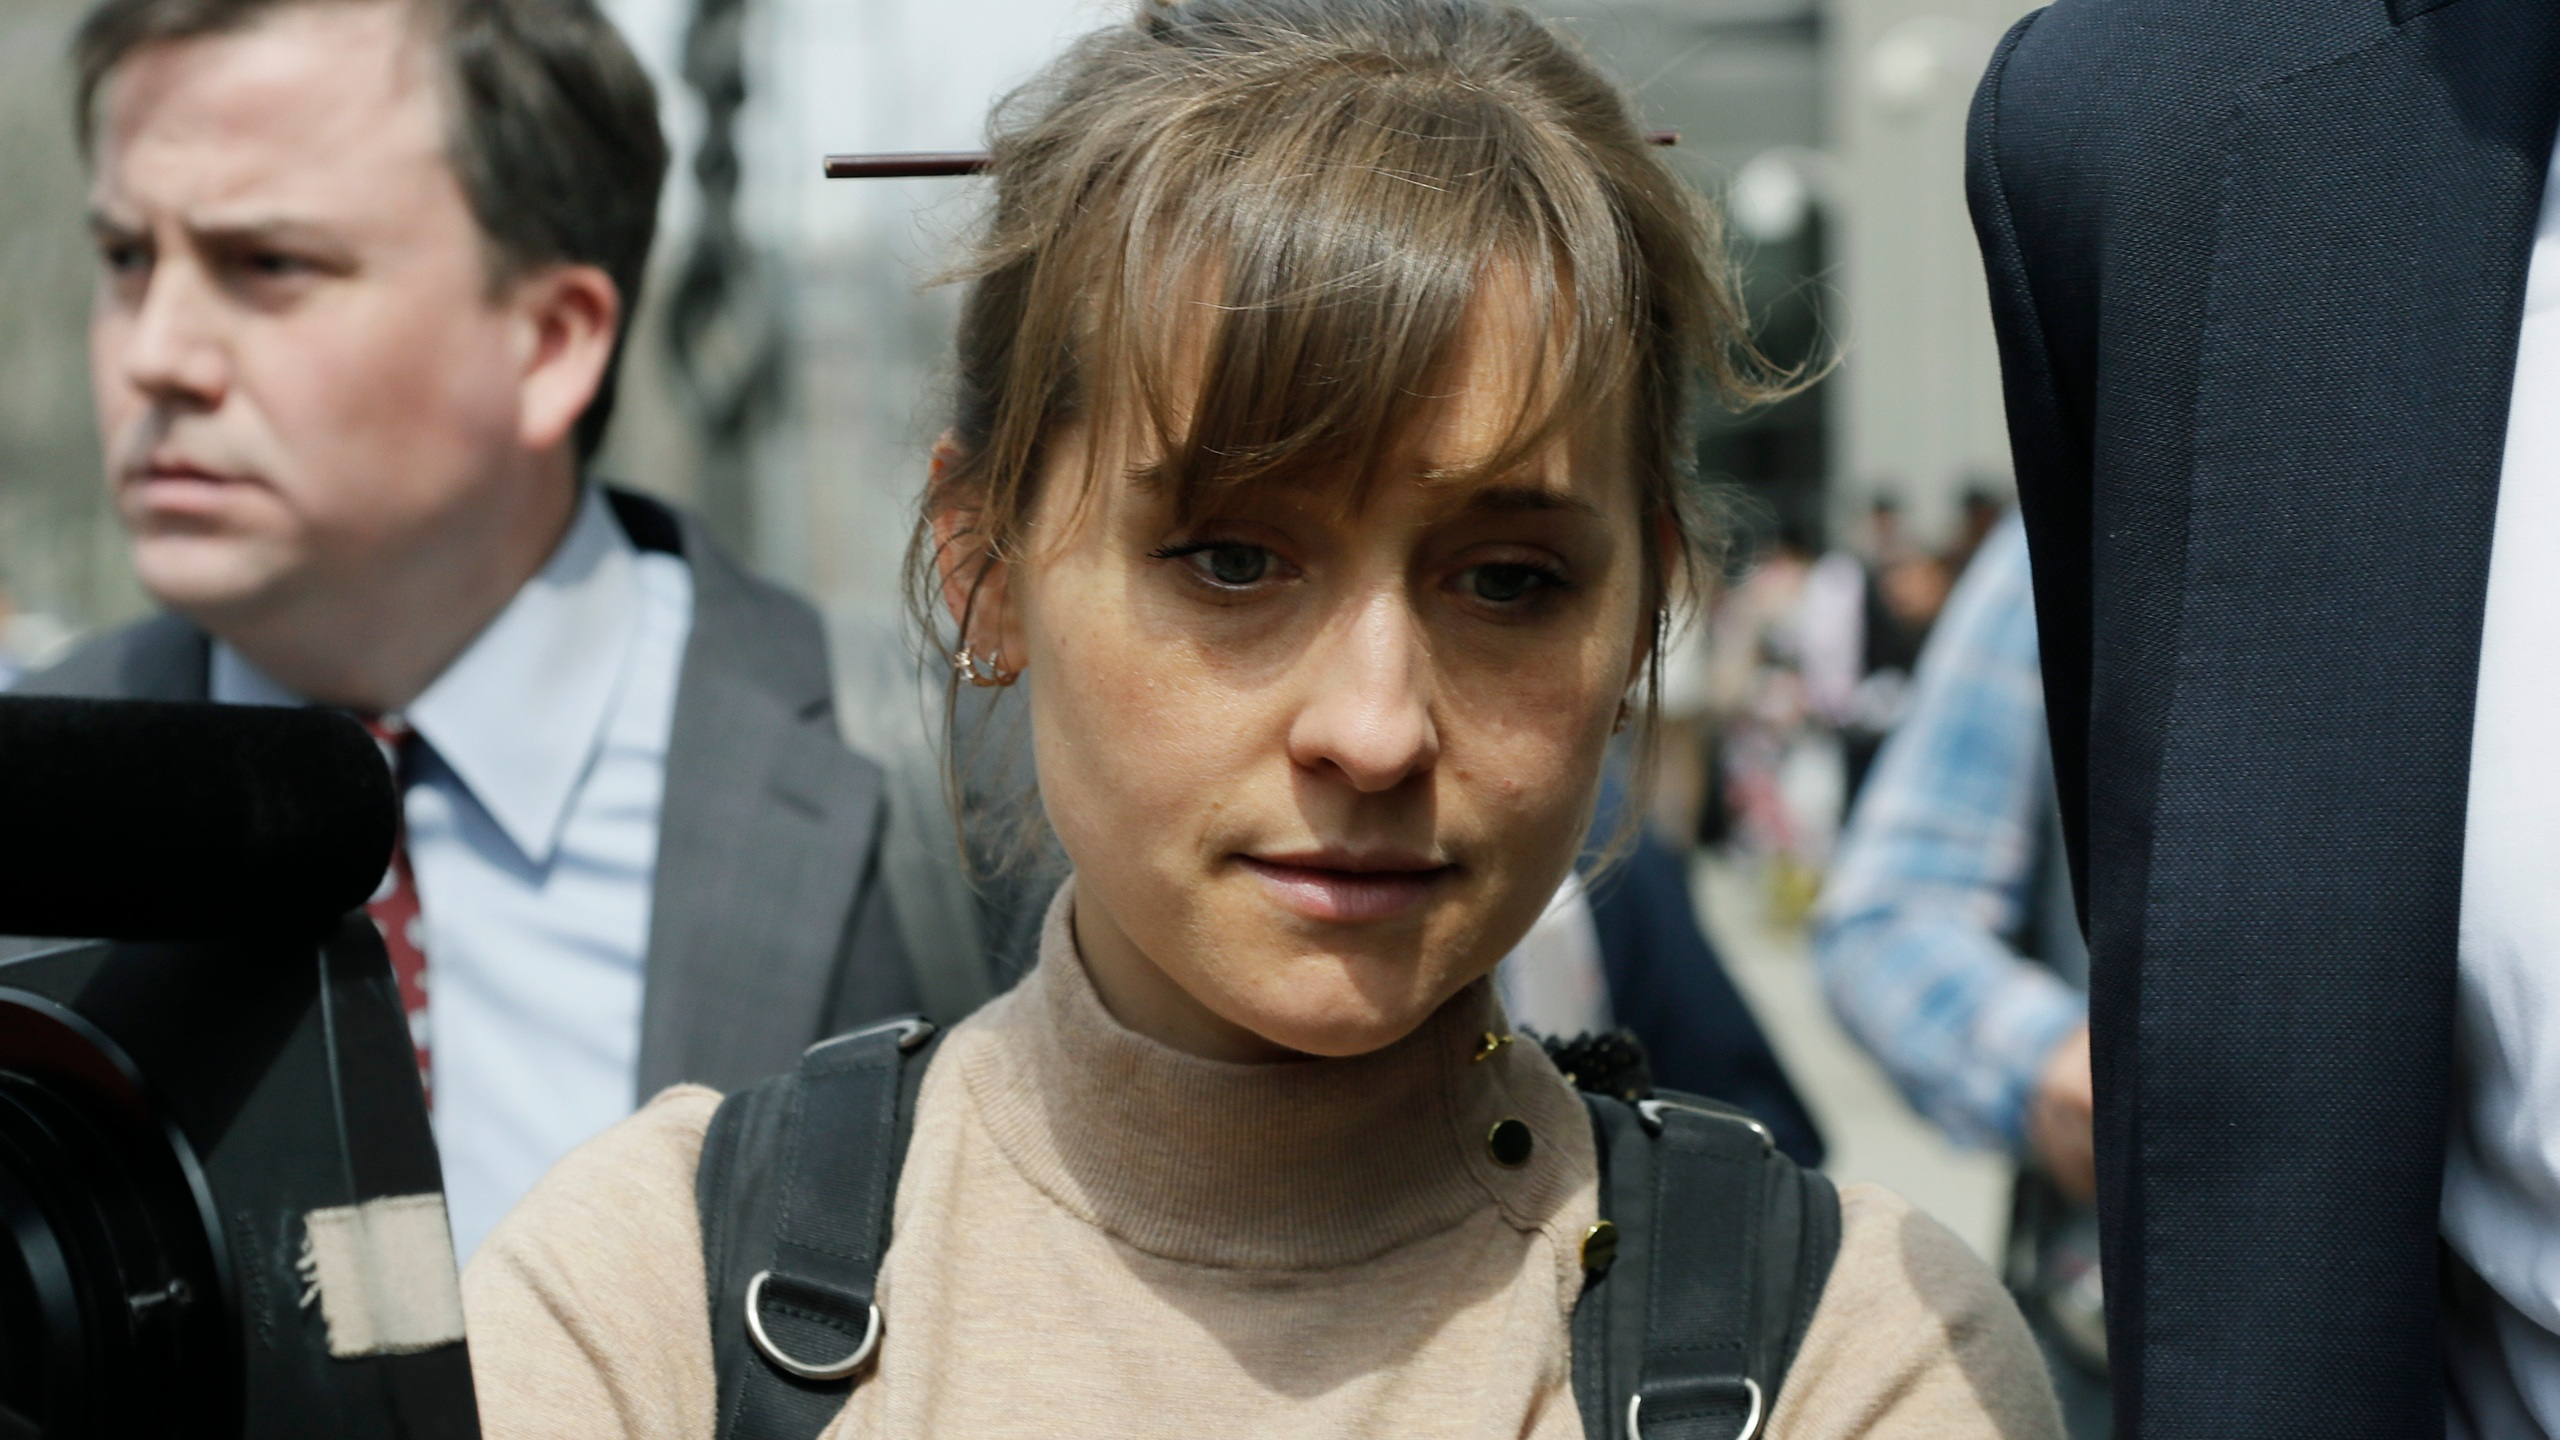 In this Monday, April 8, 2019, file photo, actress Allison Mack leaves Brooklyn federal court in New York. Mack, who played a key role in a scandal-ridden, cult-like upstate New York group, is facing sentencing on June 30, 2021, after pleading guilty to charges she manipulated women into becoming sex slaves for the group's spiritual leader. (AP Photo/Mark Lennihan, File)